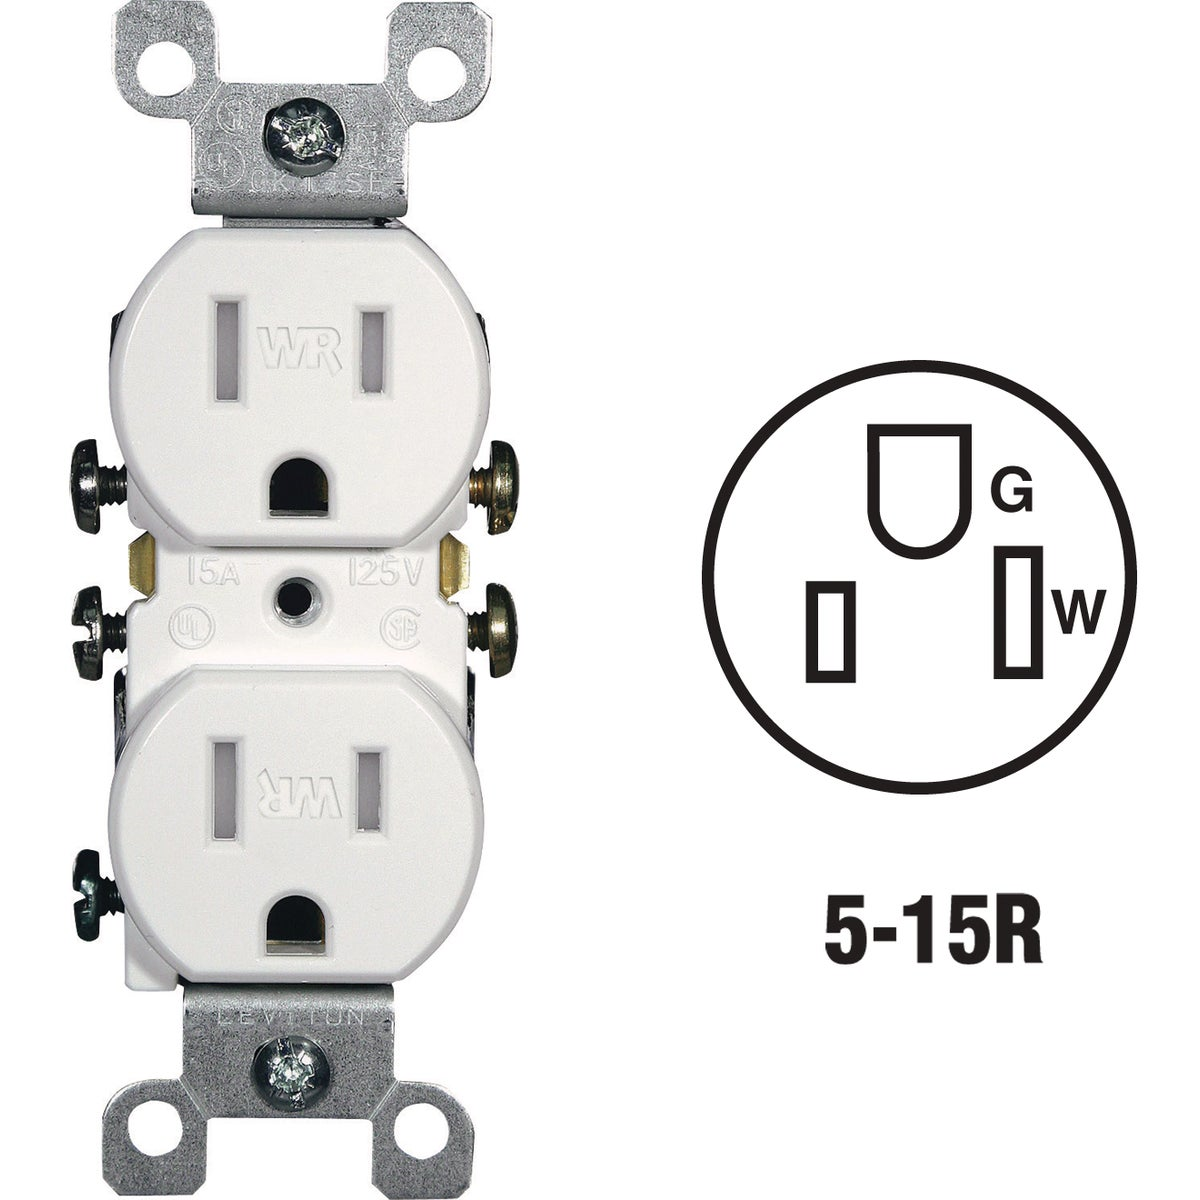 WHI WEATHRPRF TAMP OUTLT - R62-W5320-T0W by Leviton Mfg Co